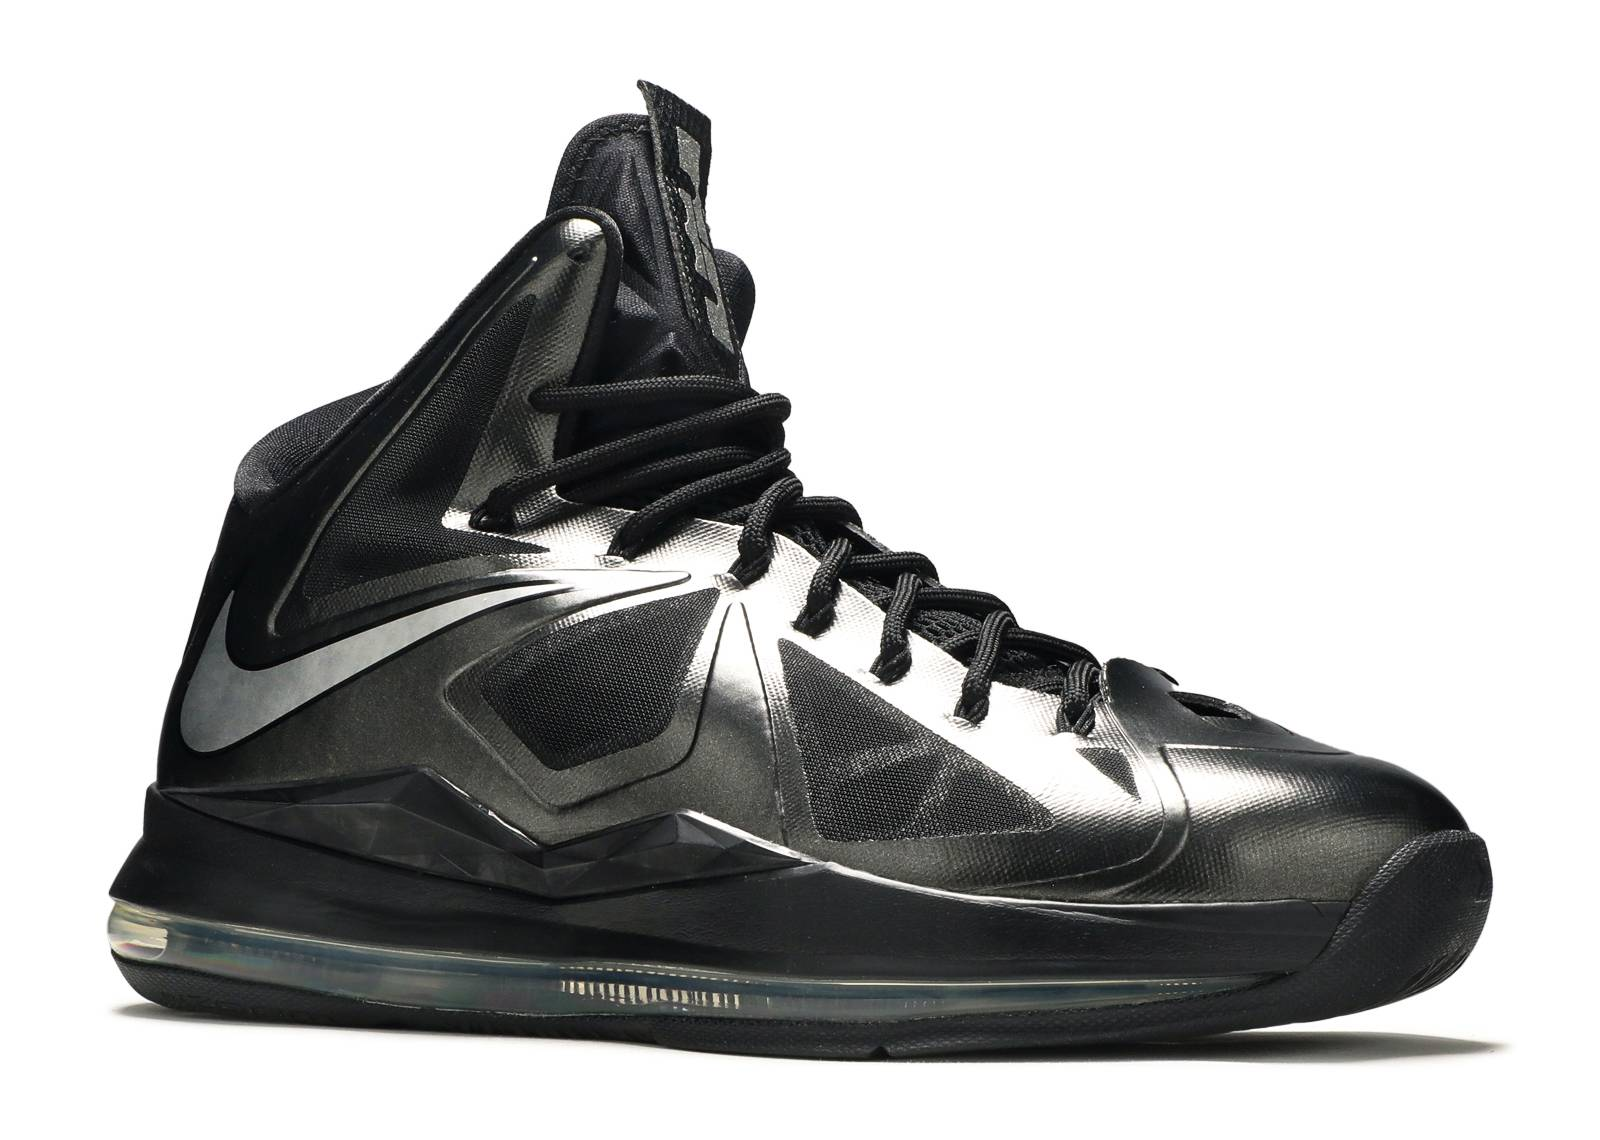 lebron 10 carbon black/metallic silver-anthracite diamond